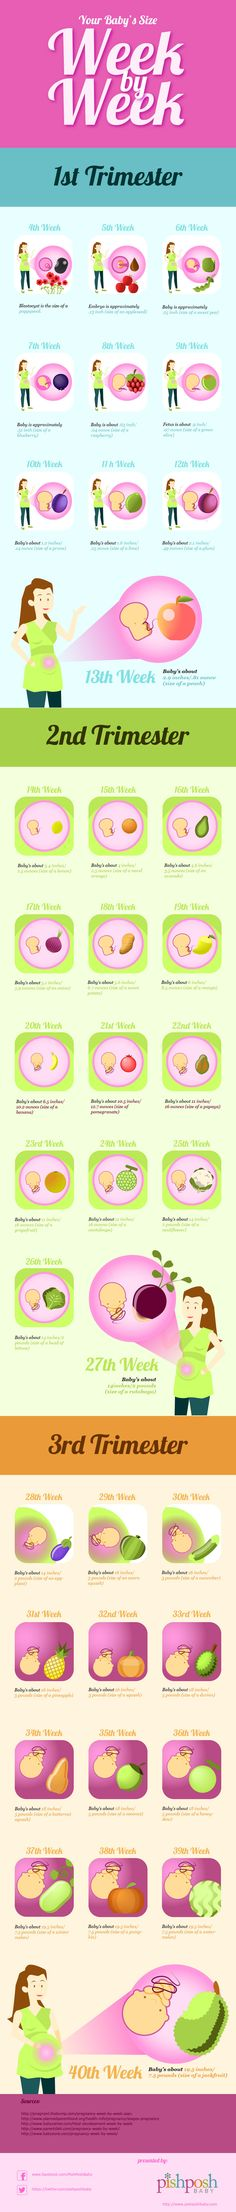 mama natural week by week guide to pregnancy and childbirth